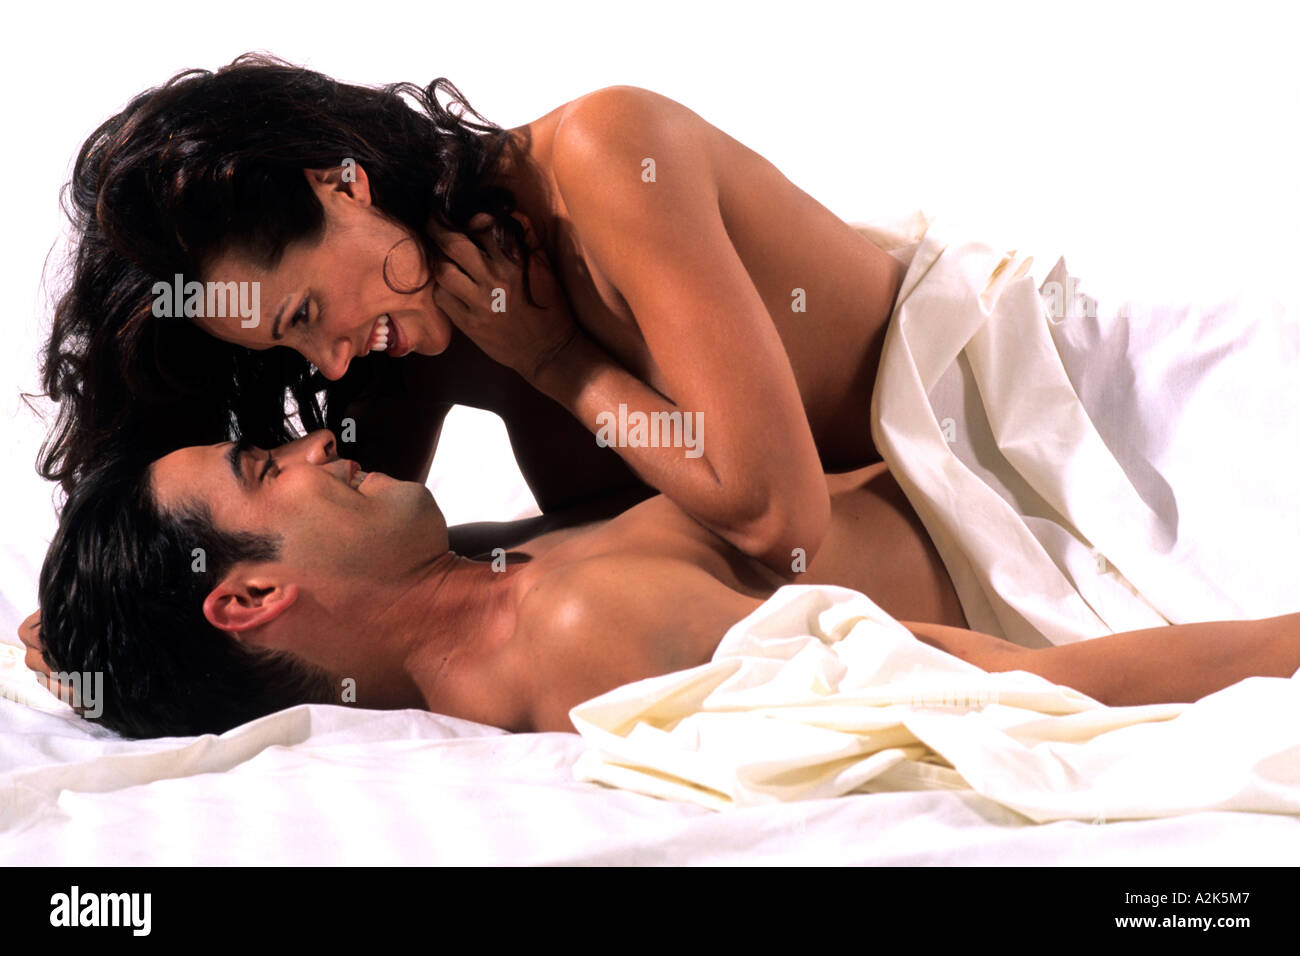 Sexy Couple In Bed Romance Under Sheets Snuggling Stock -9849